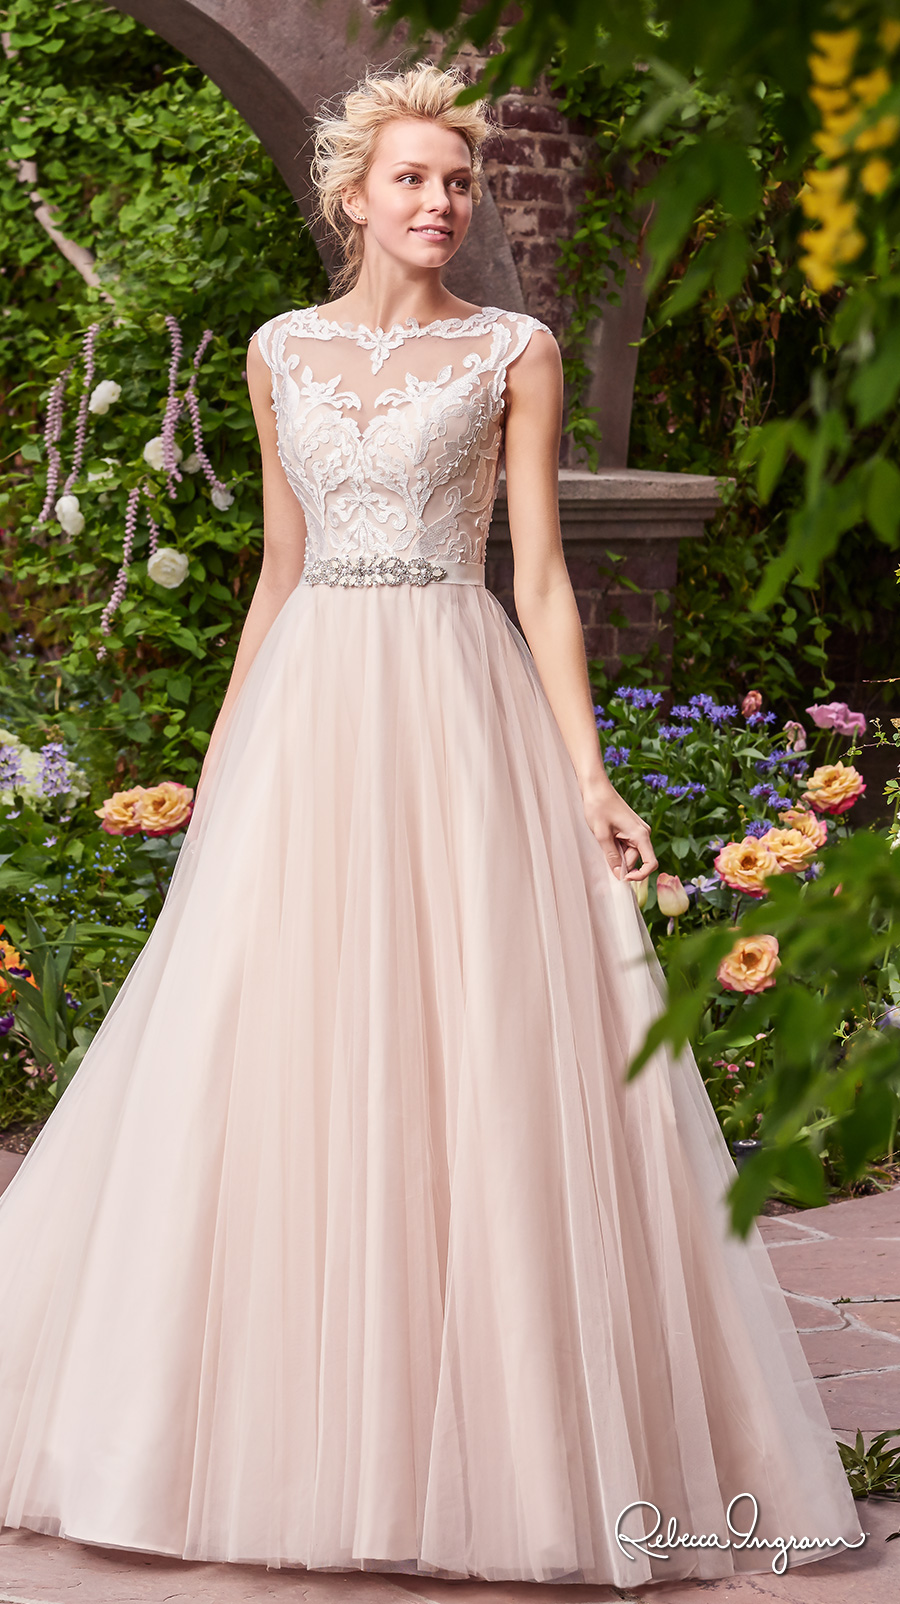 rebecca ingram 2017 bridal cap sleeves illusion bateau neckline heavily embellished bodice ivory color romantic illusion back chapel train (carrie) mv